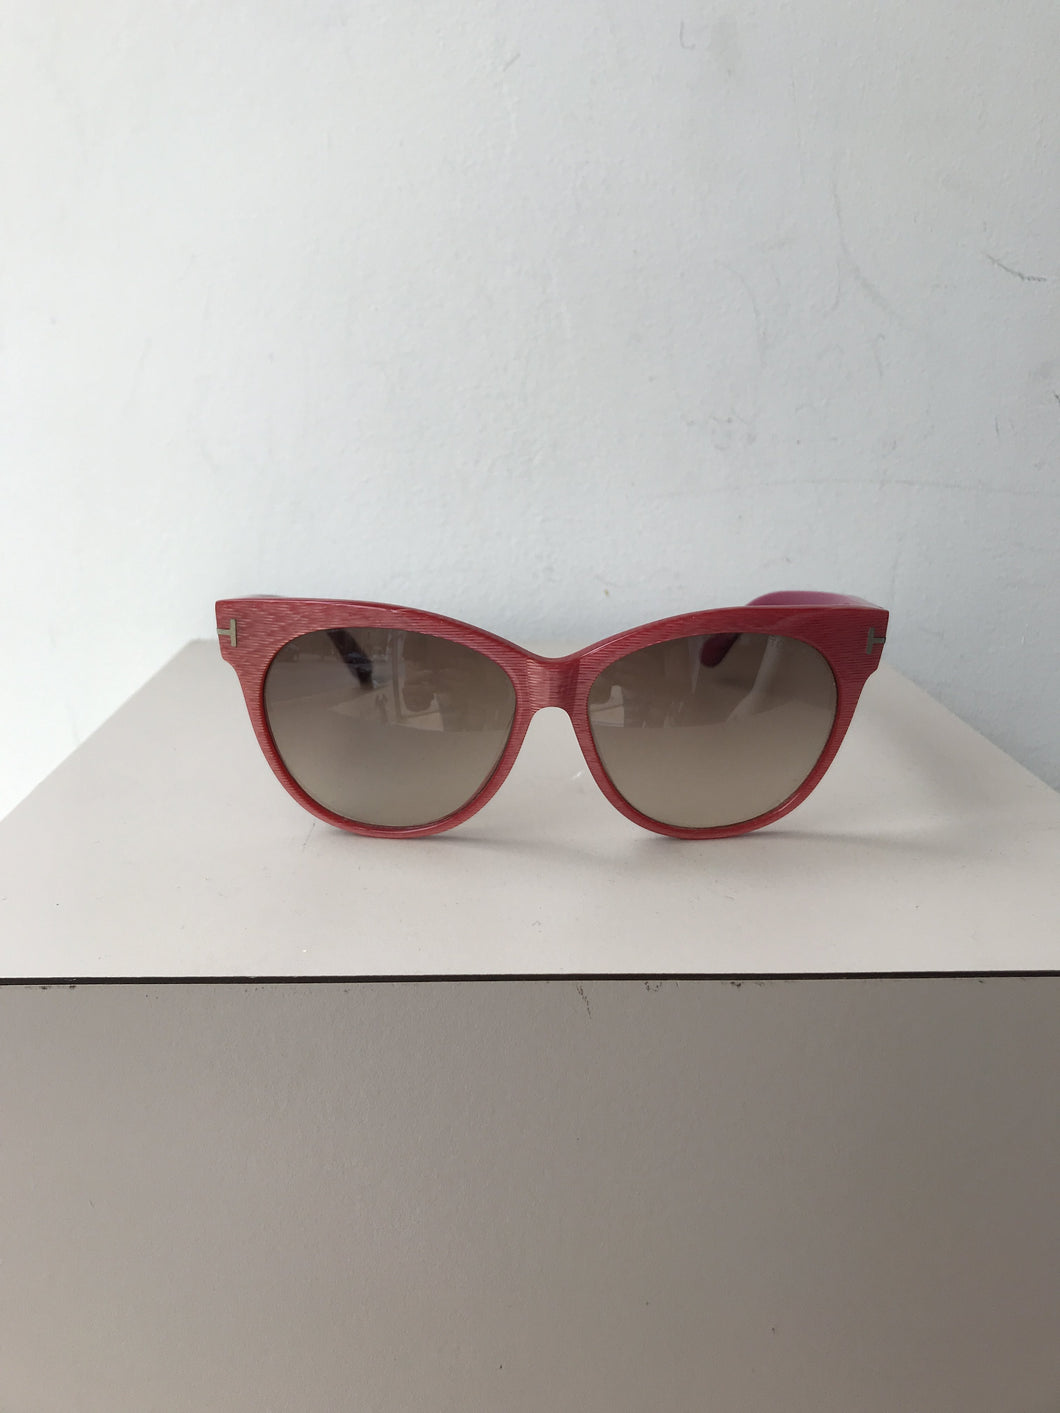 Tom Ford magenta and orange Saskia sunglasses - My Girlfriend's Wardrobe York Pa